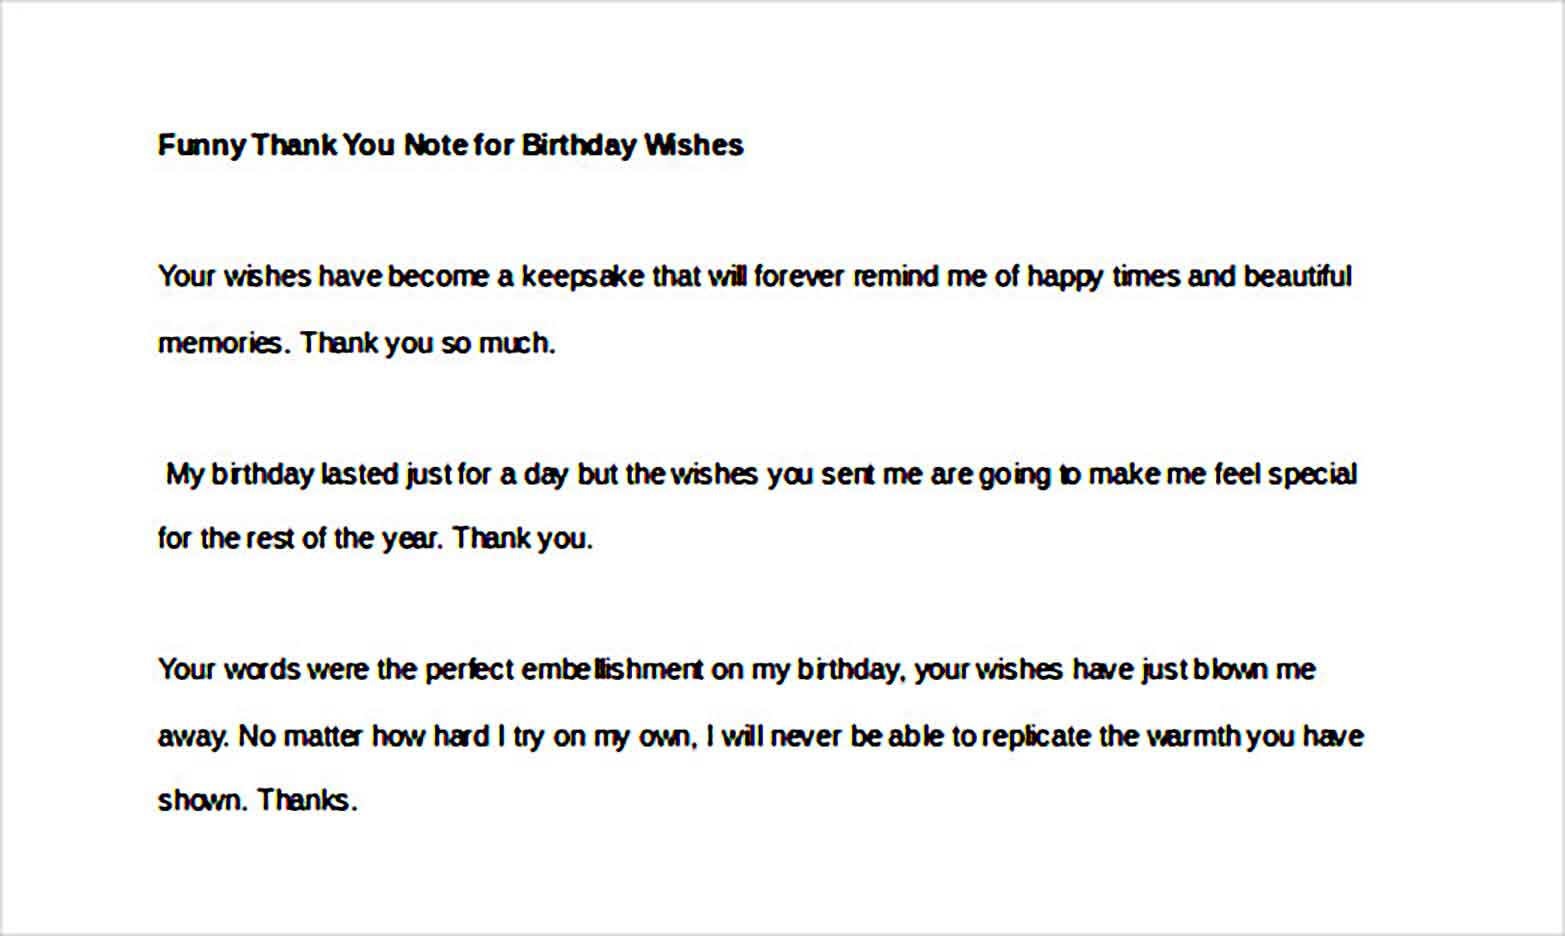 funny thank you note for birthday wishes